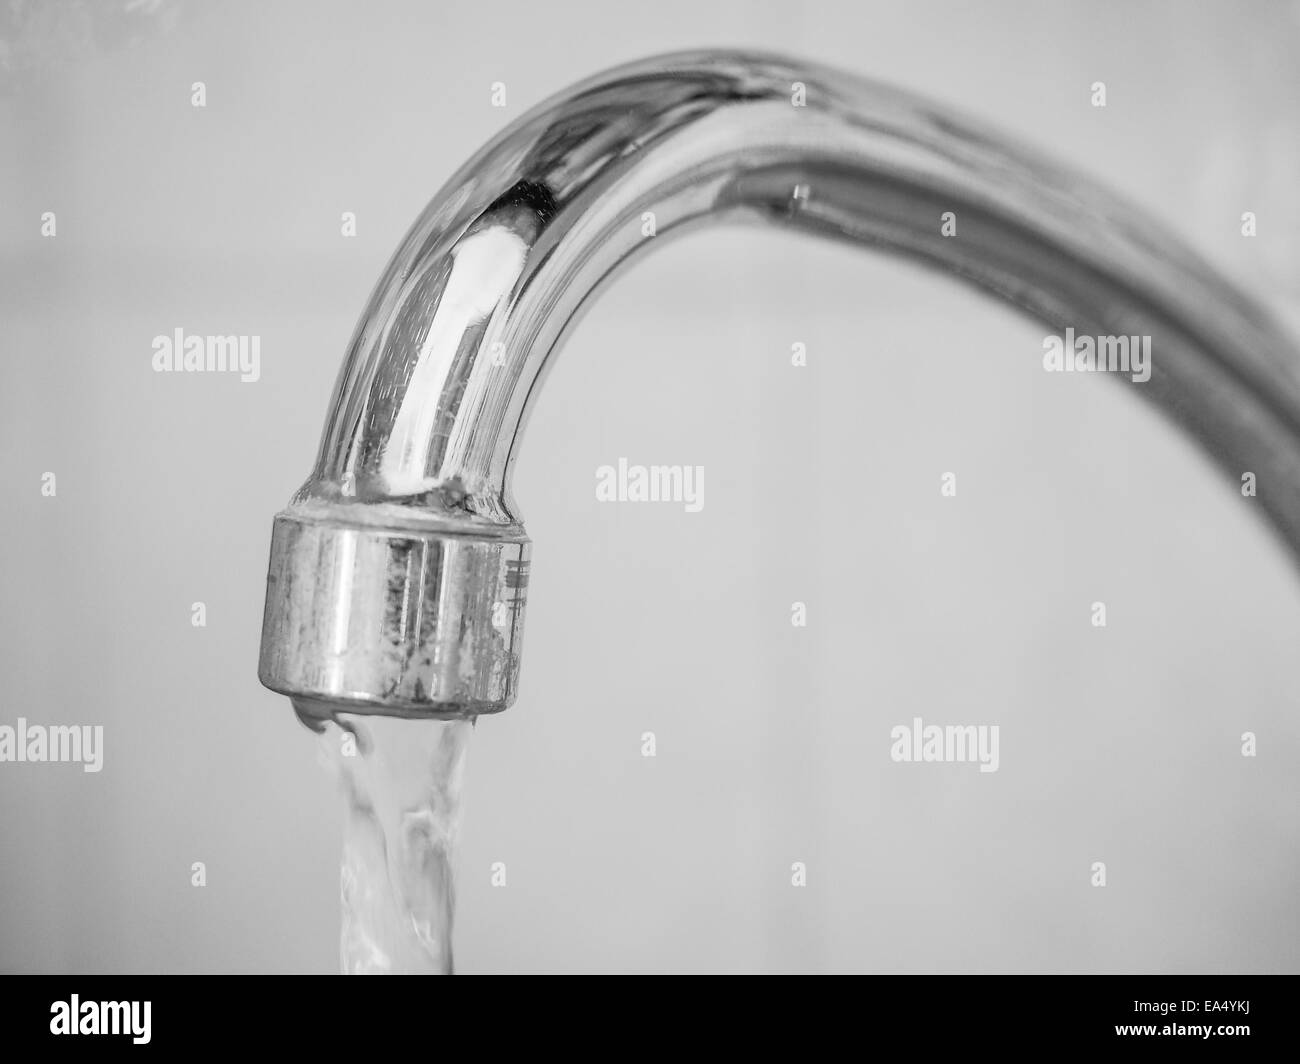 Kitchen sink tap with flowing water Stock Photo, Royalty Free ...